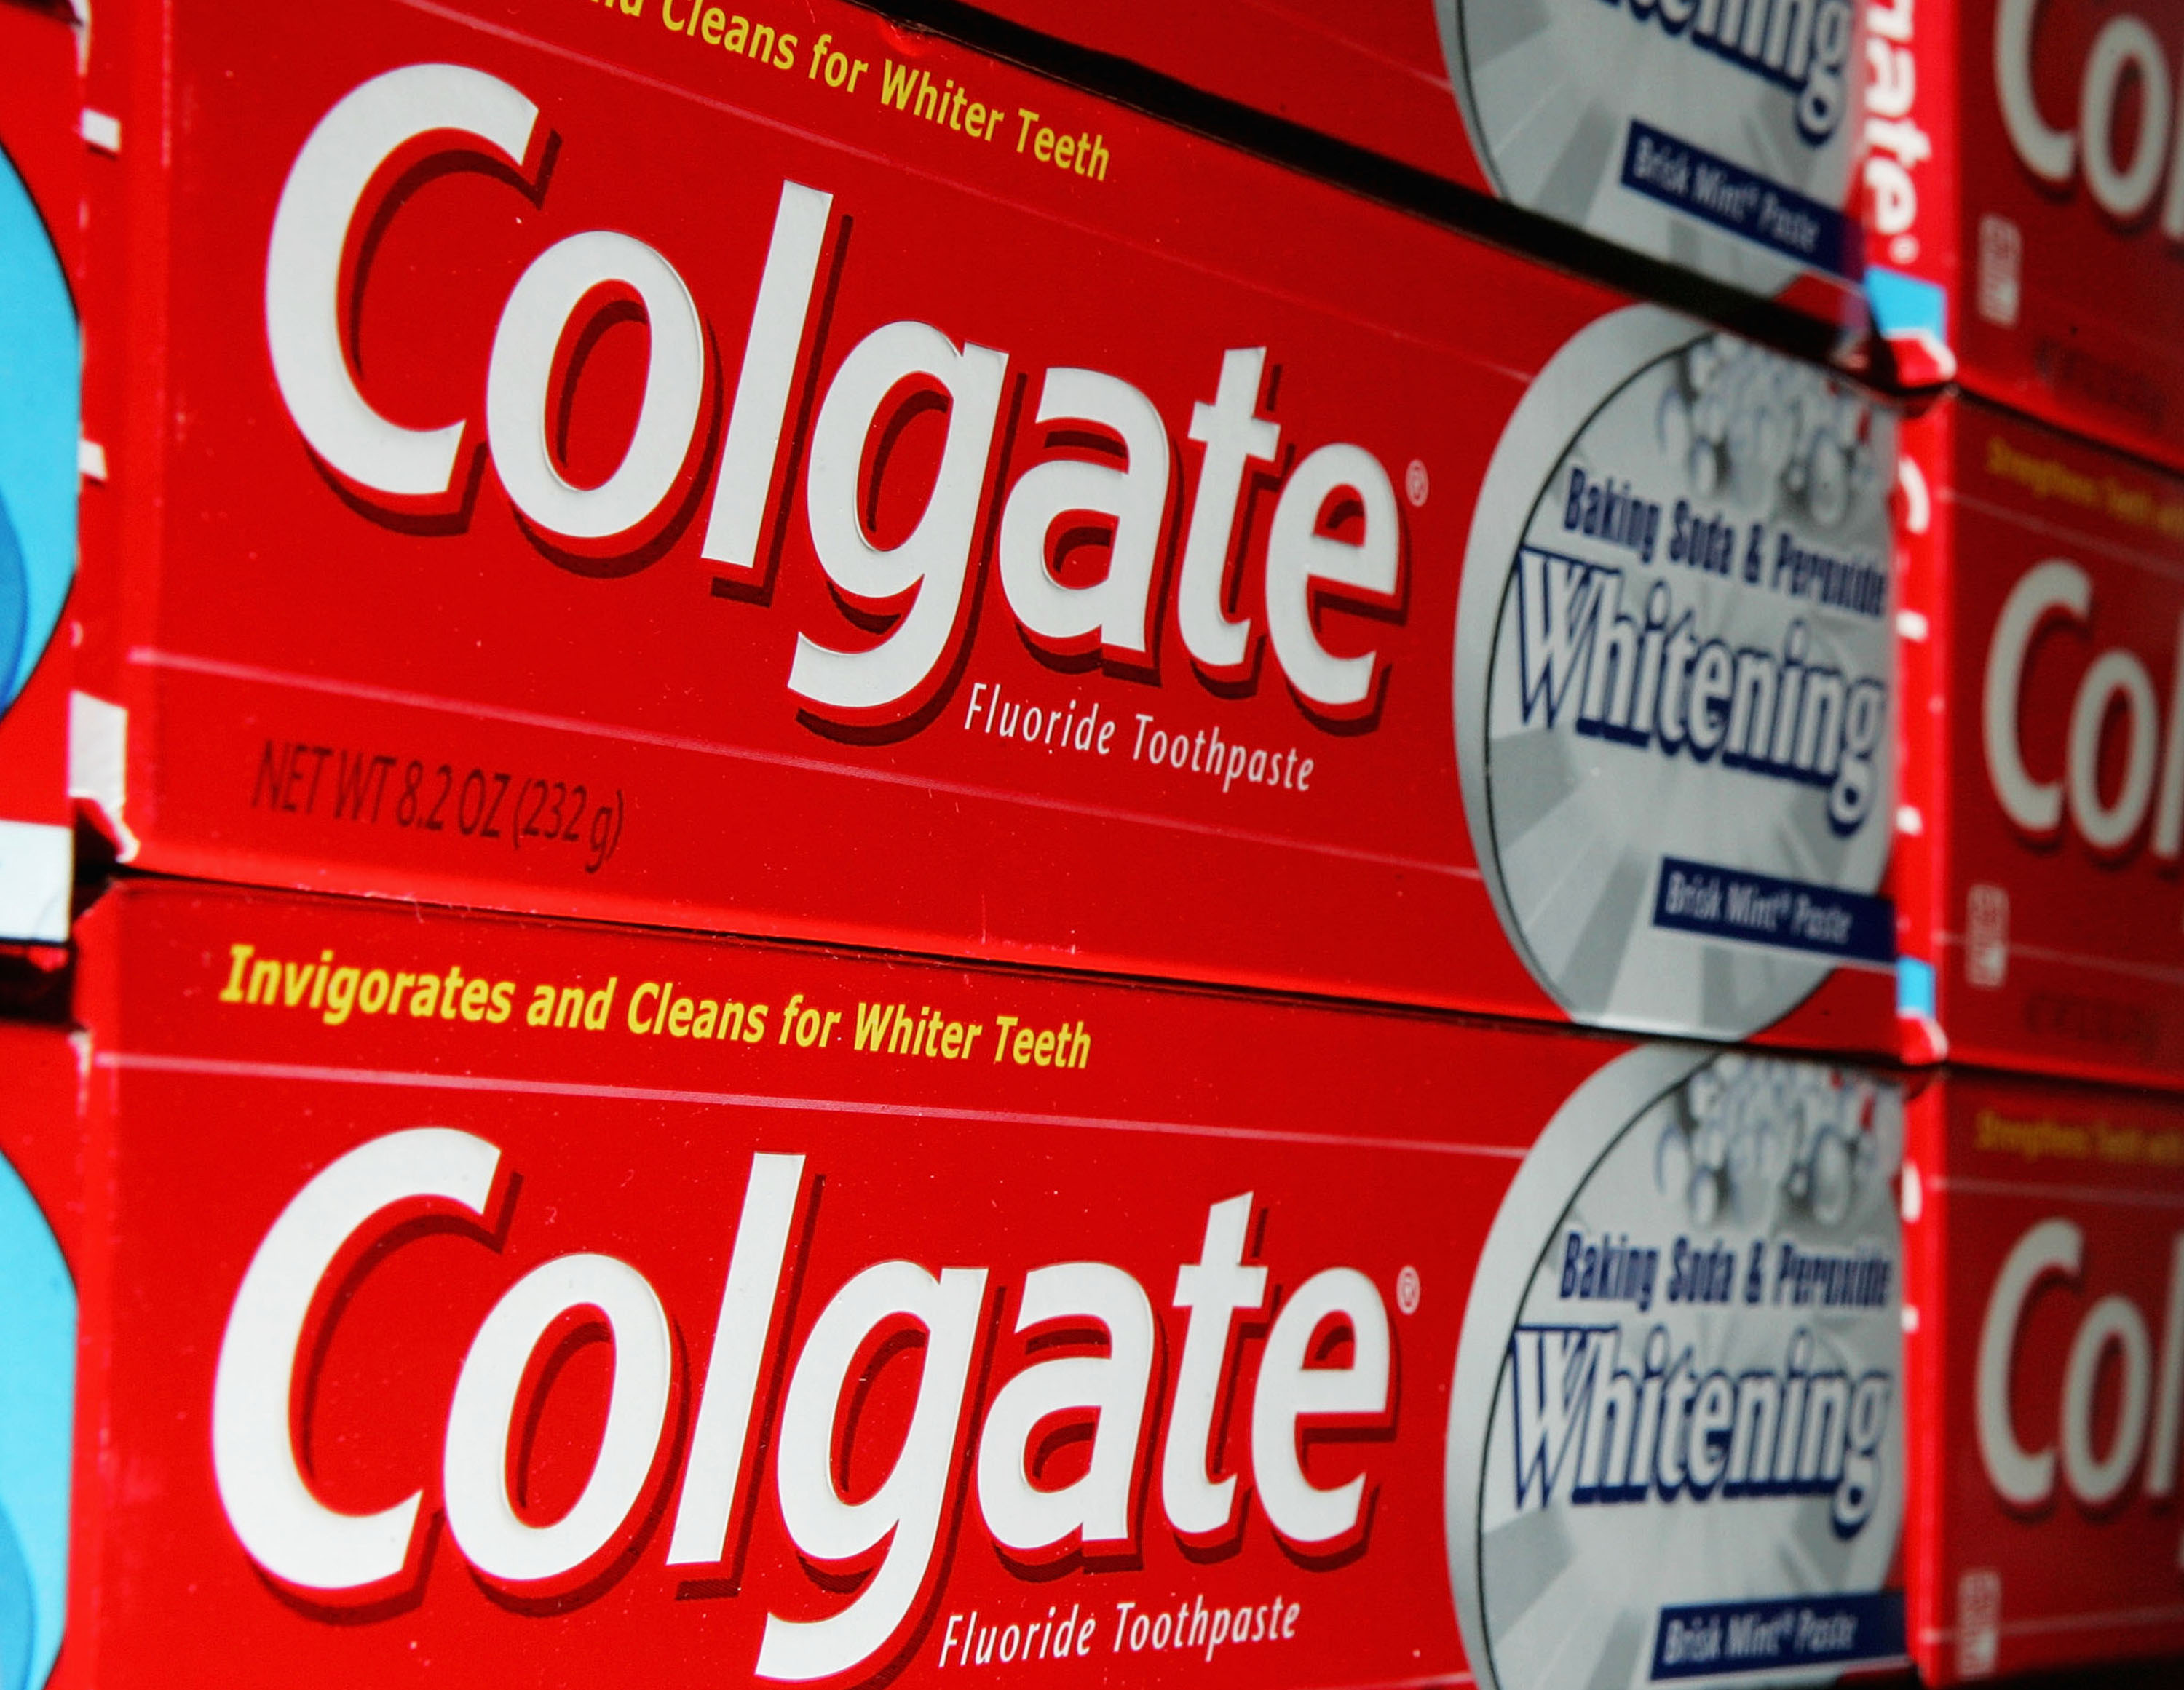 Colgate-Palmolive To Cut Staff By 12 Percent